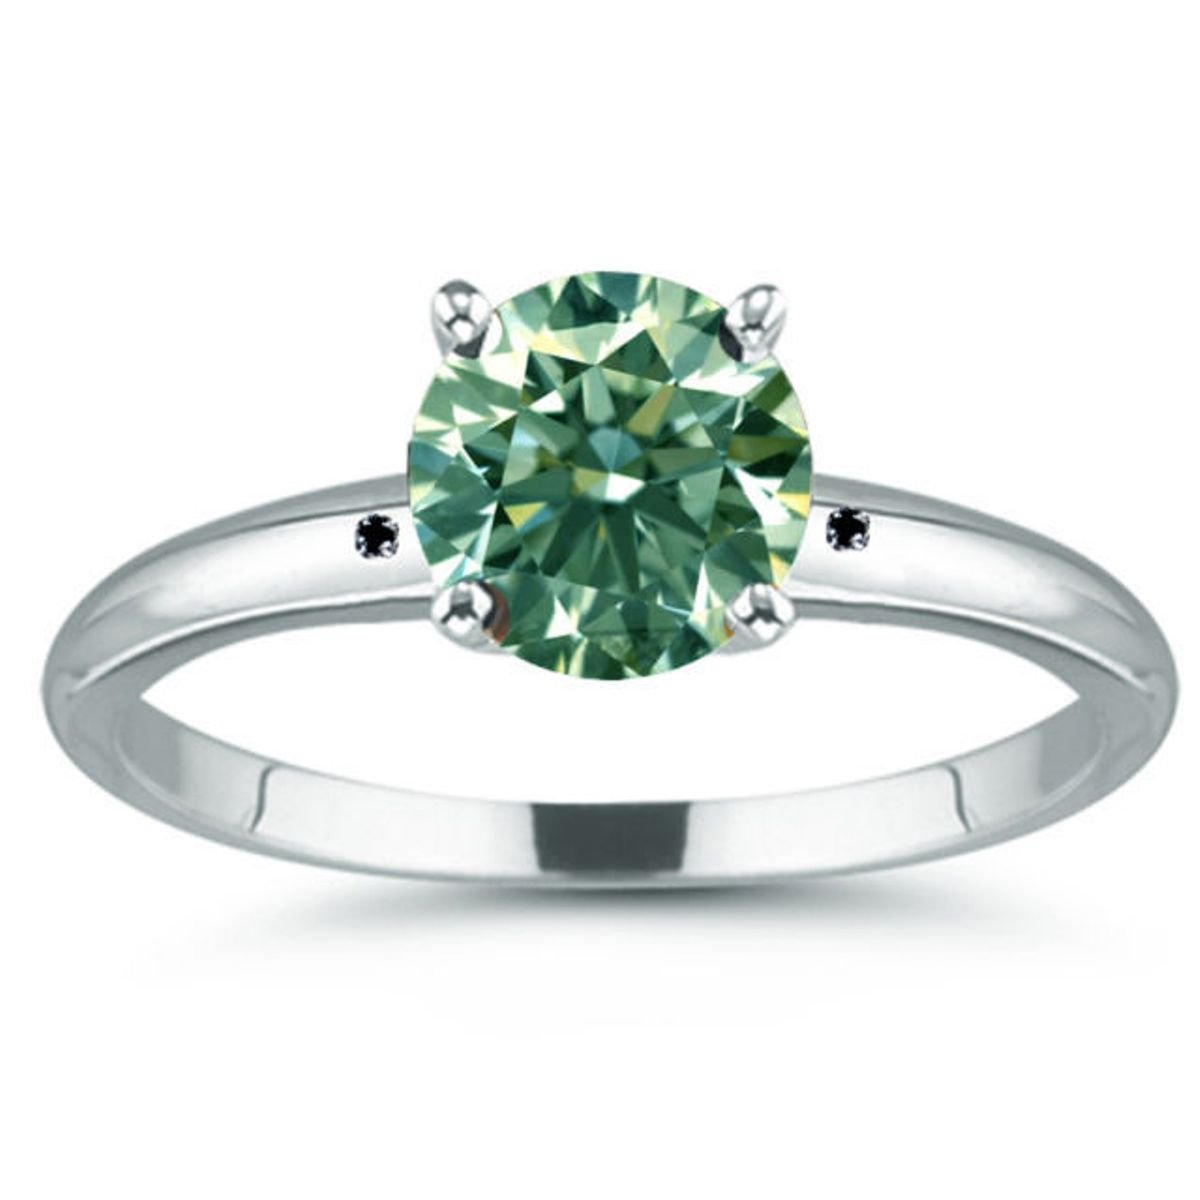 RINGJEWEL Round Green Moissanite Solitaire Silver Plated Engagement Ring (Size 7,13.53 ct,VS1 Clarity)